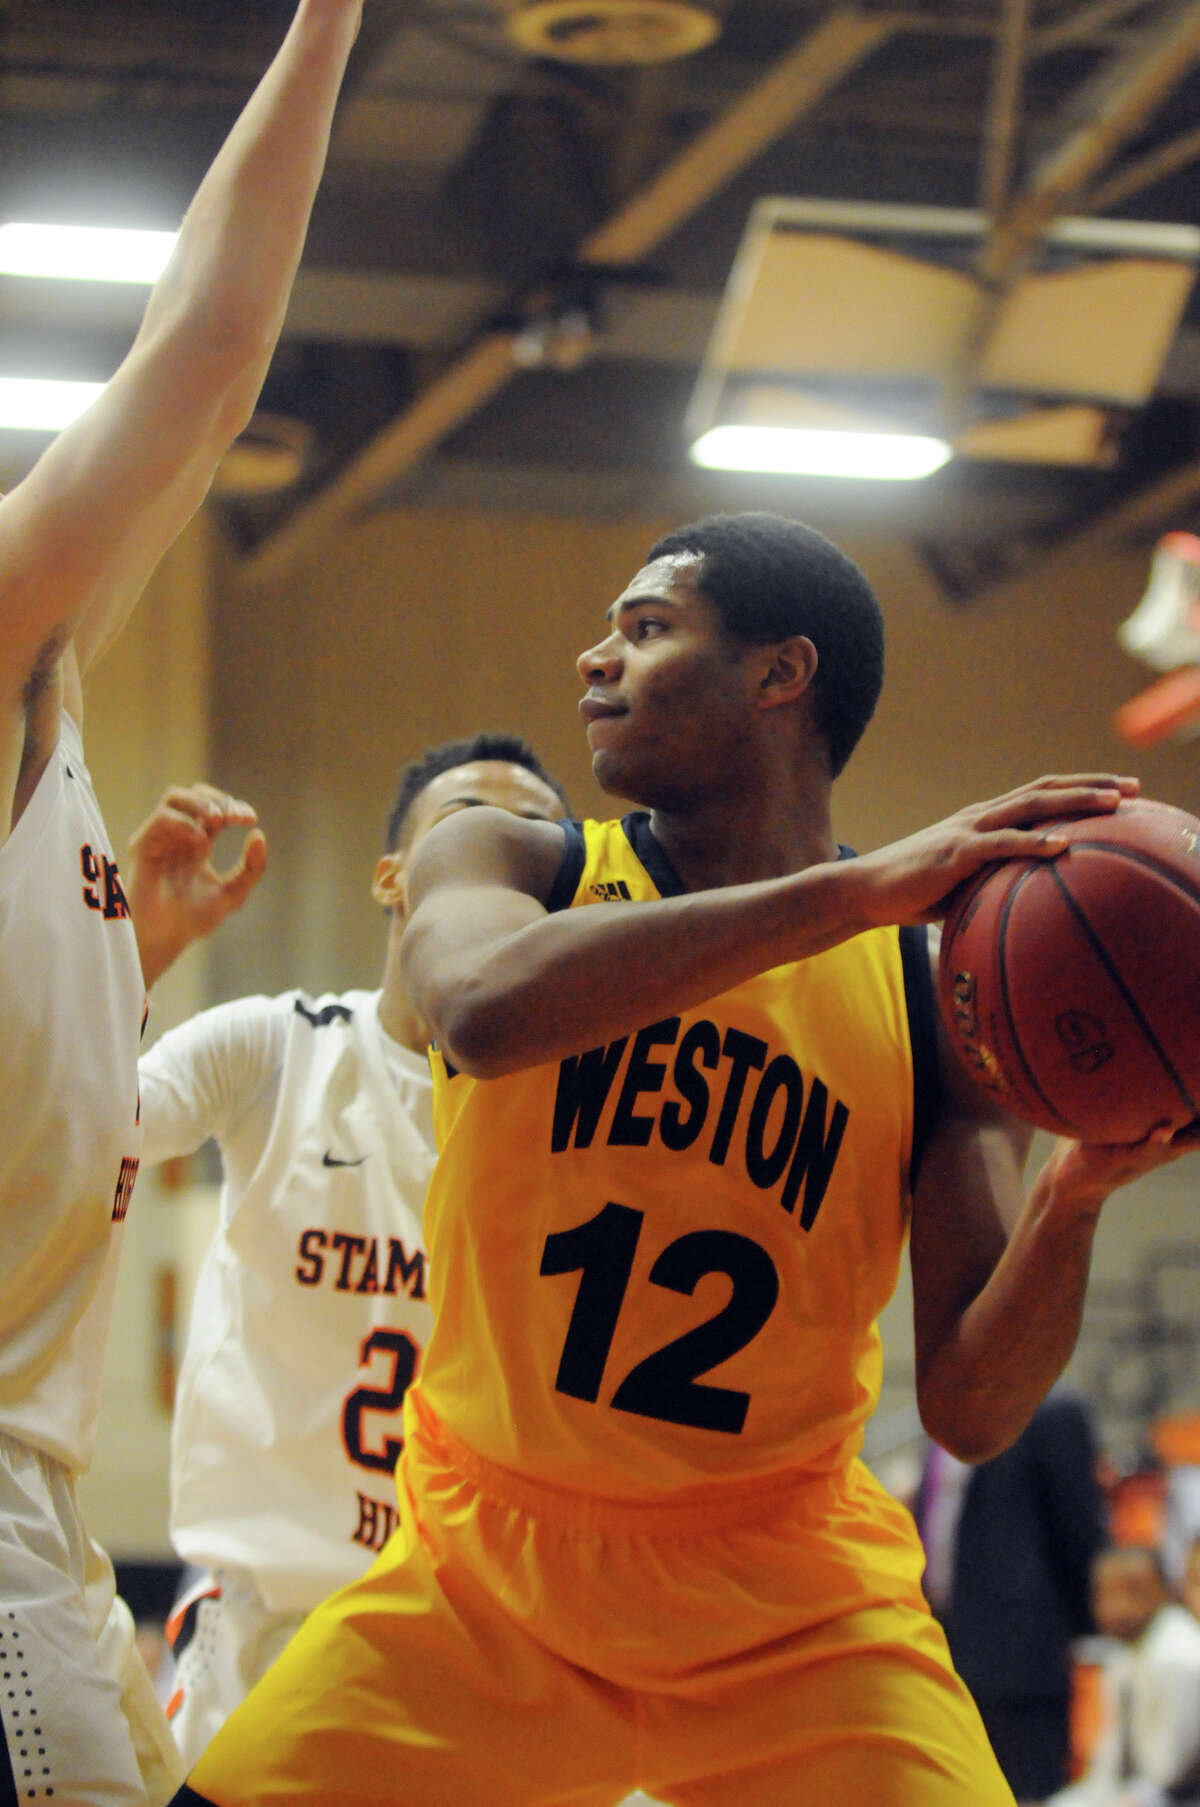 Weston's Nik Parker in action as Stamford High School hosts Weston in a boys basketball game during the Kuzco Tournament at Stamford High School in Stamford, Conn., Dec. 27, 2014.